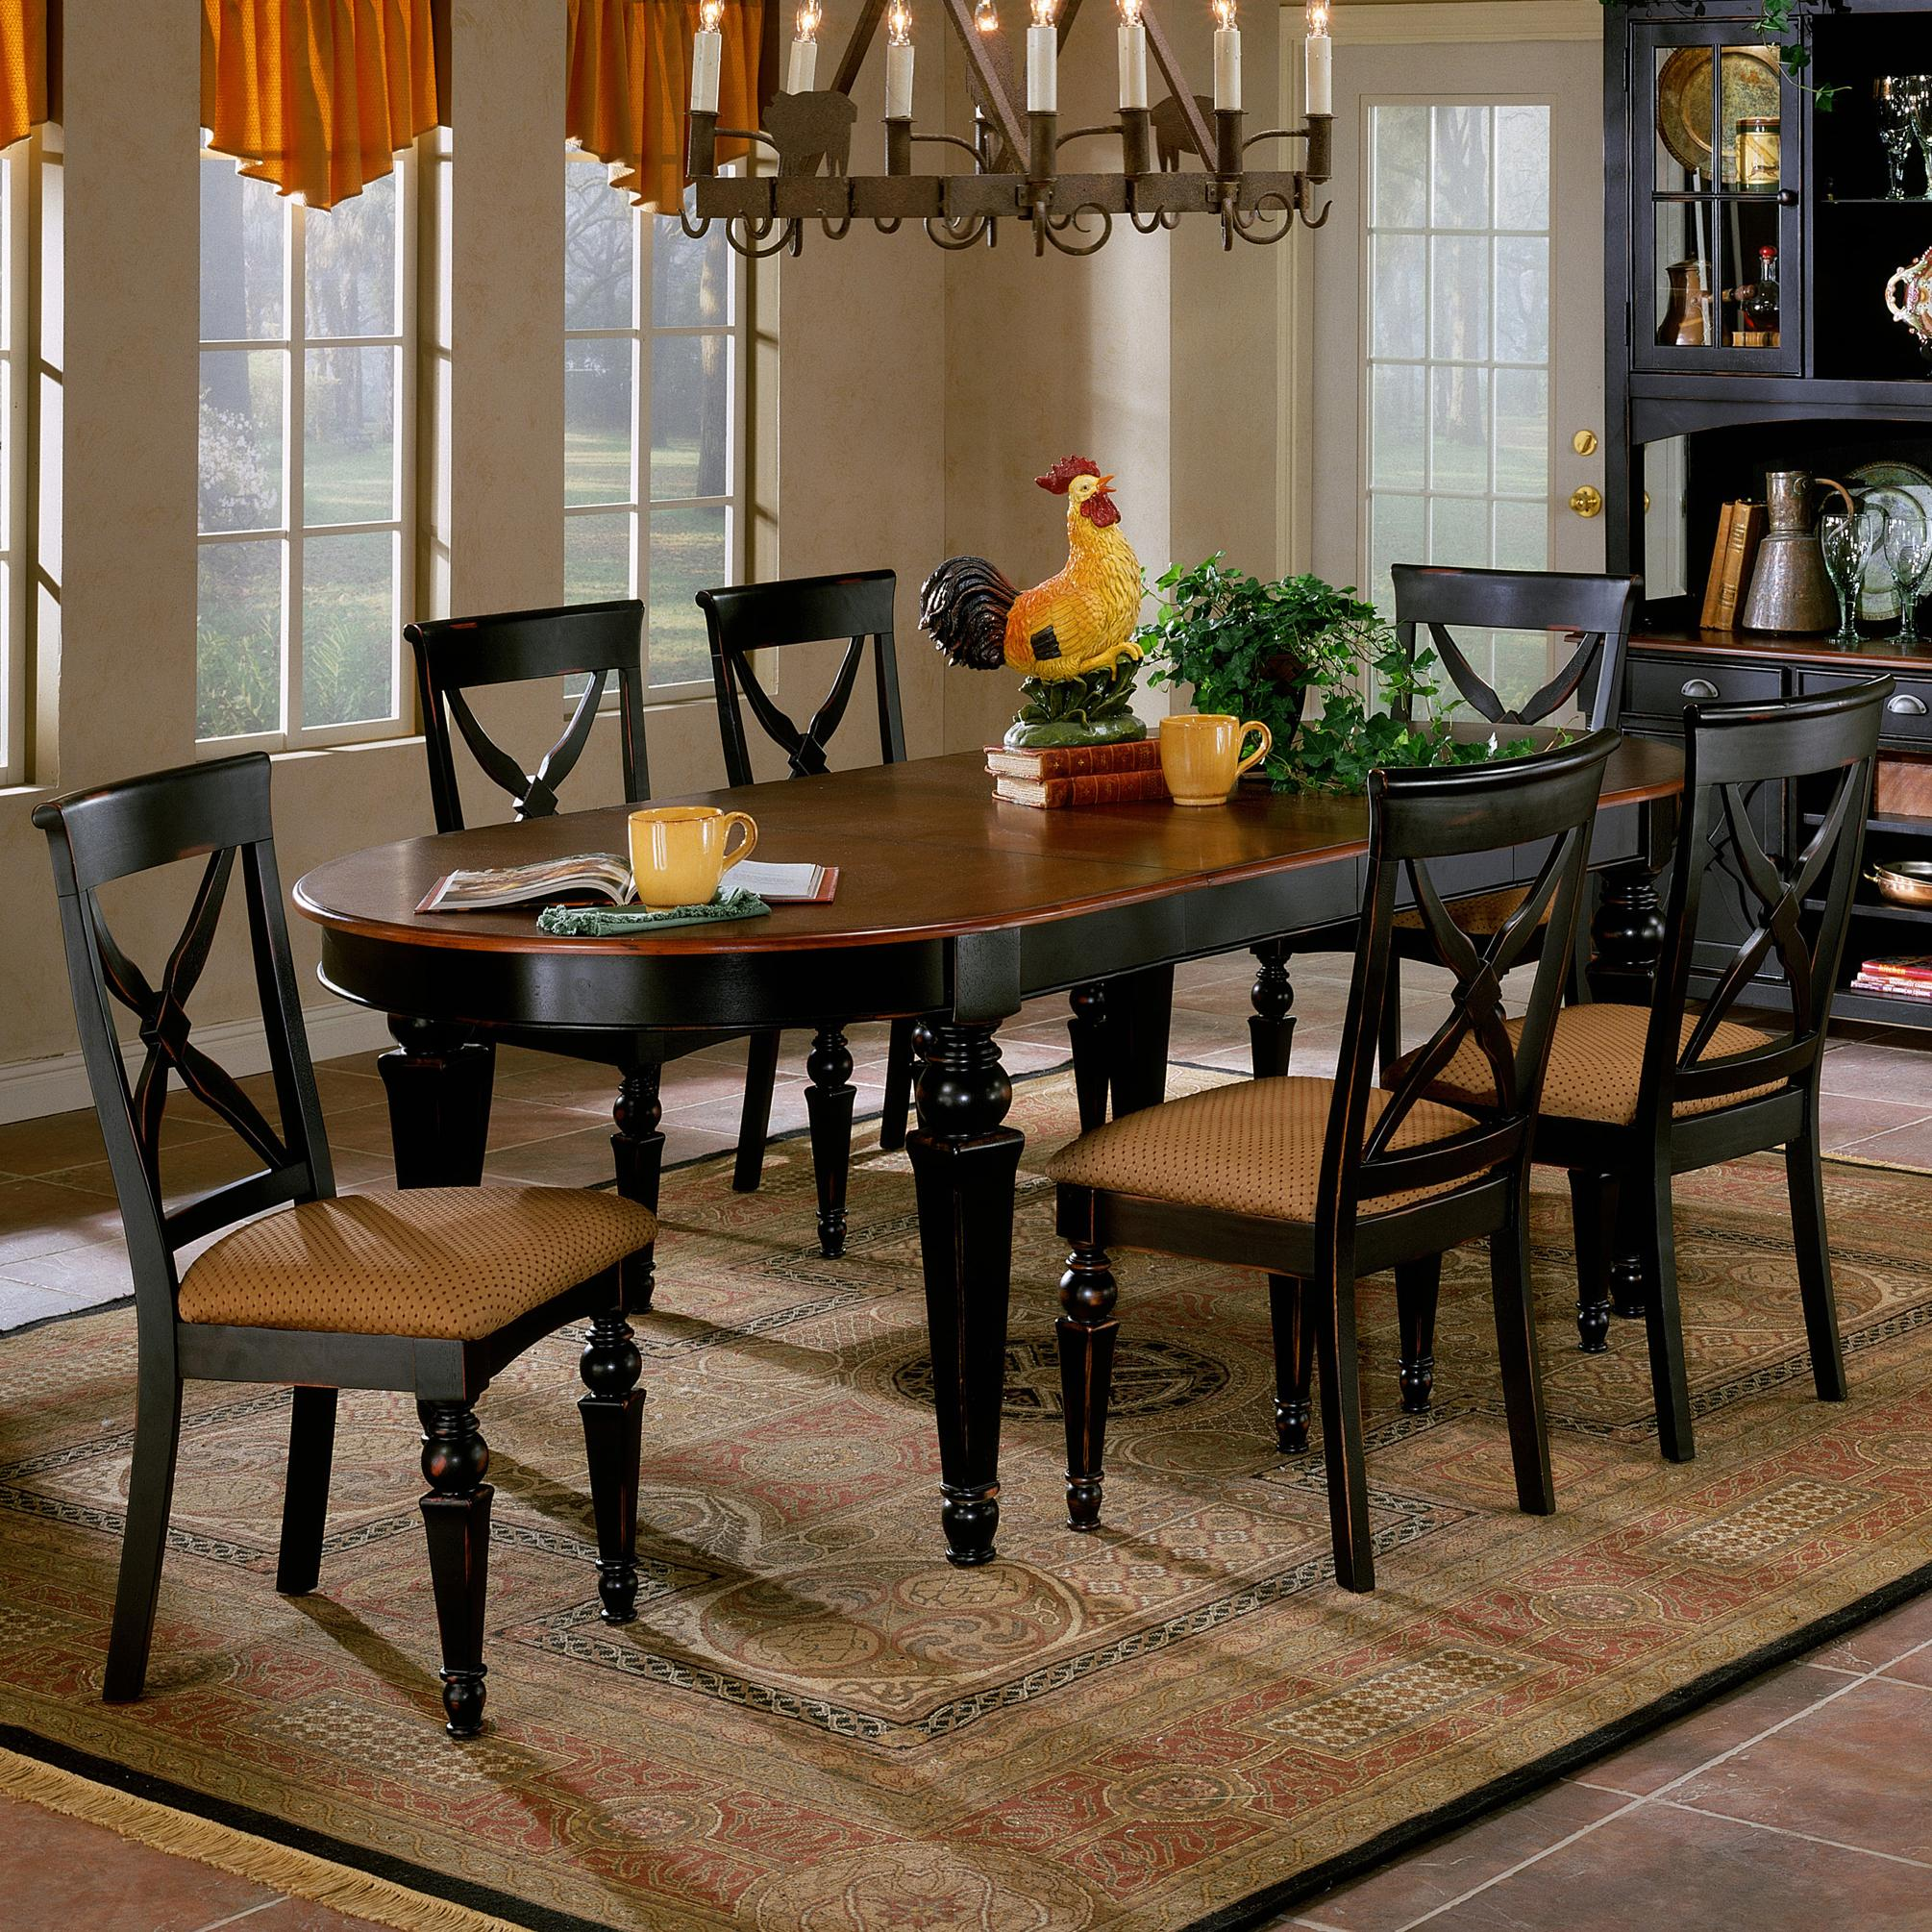 seven piece dining set productsfhillsdalefcolorfnorthernheights dtbc b seven piece dining set: seven piece dining set